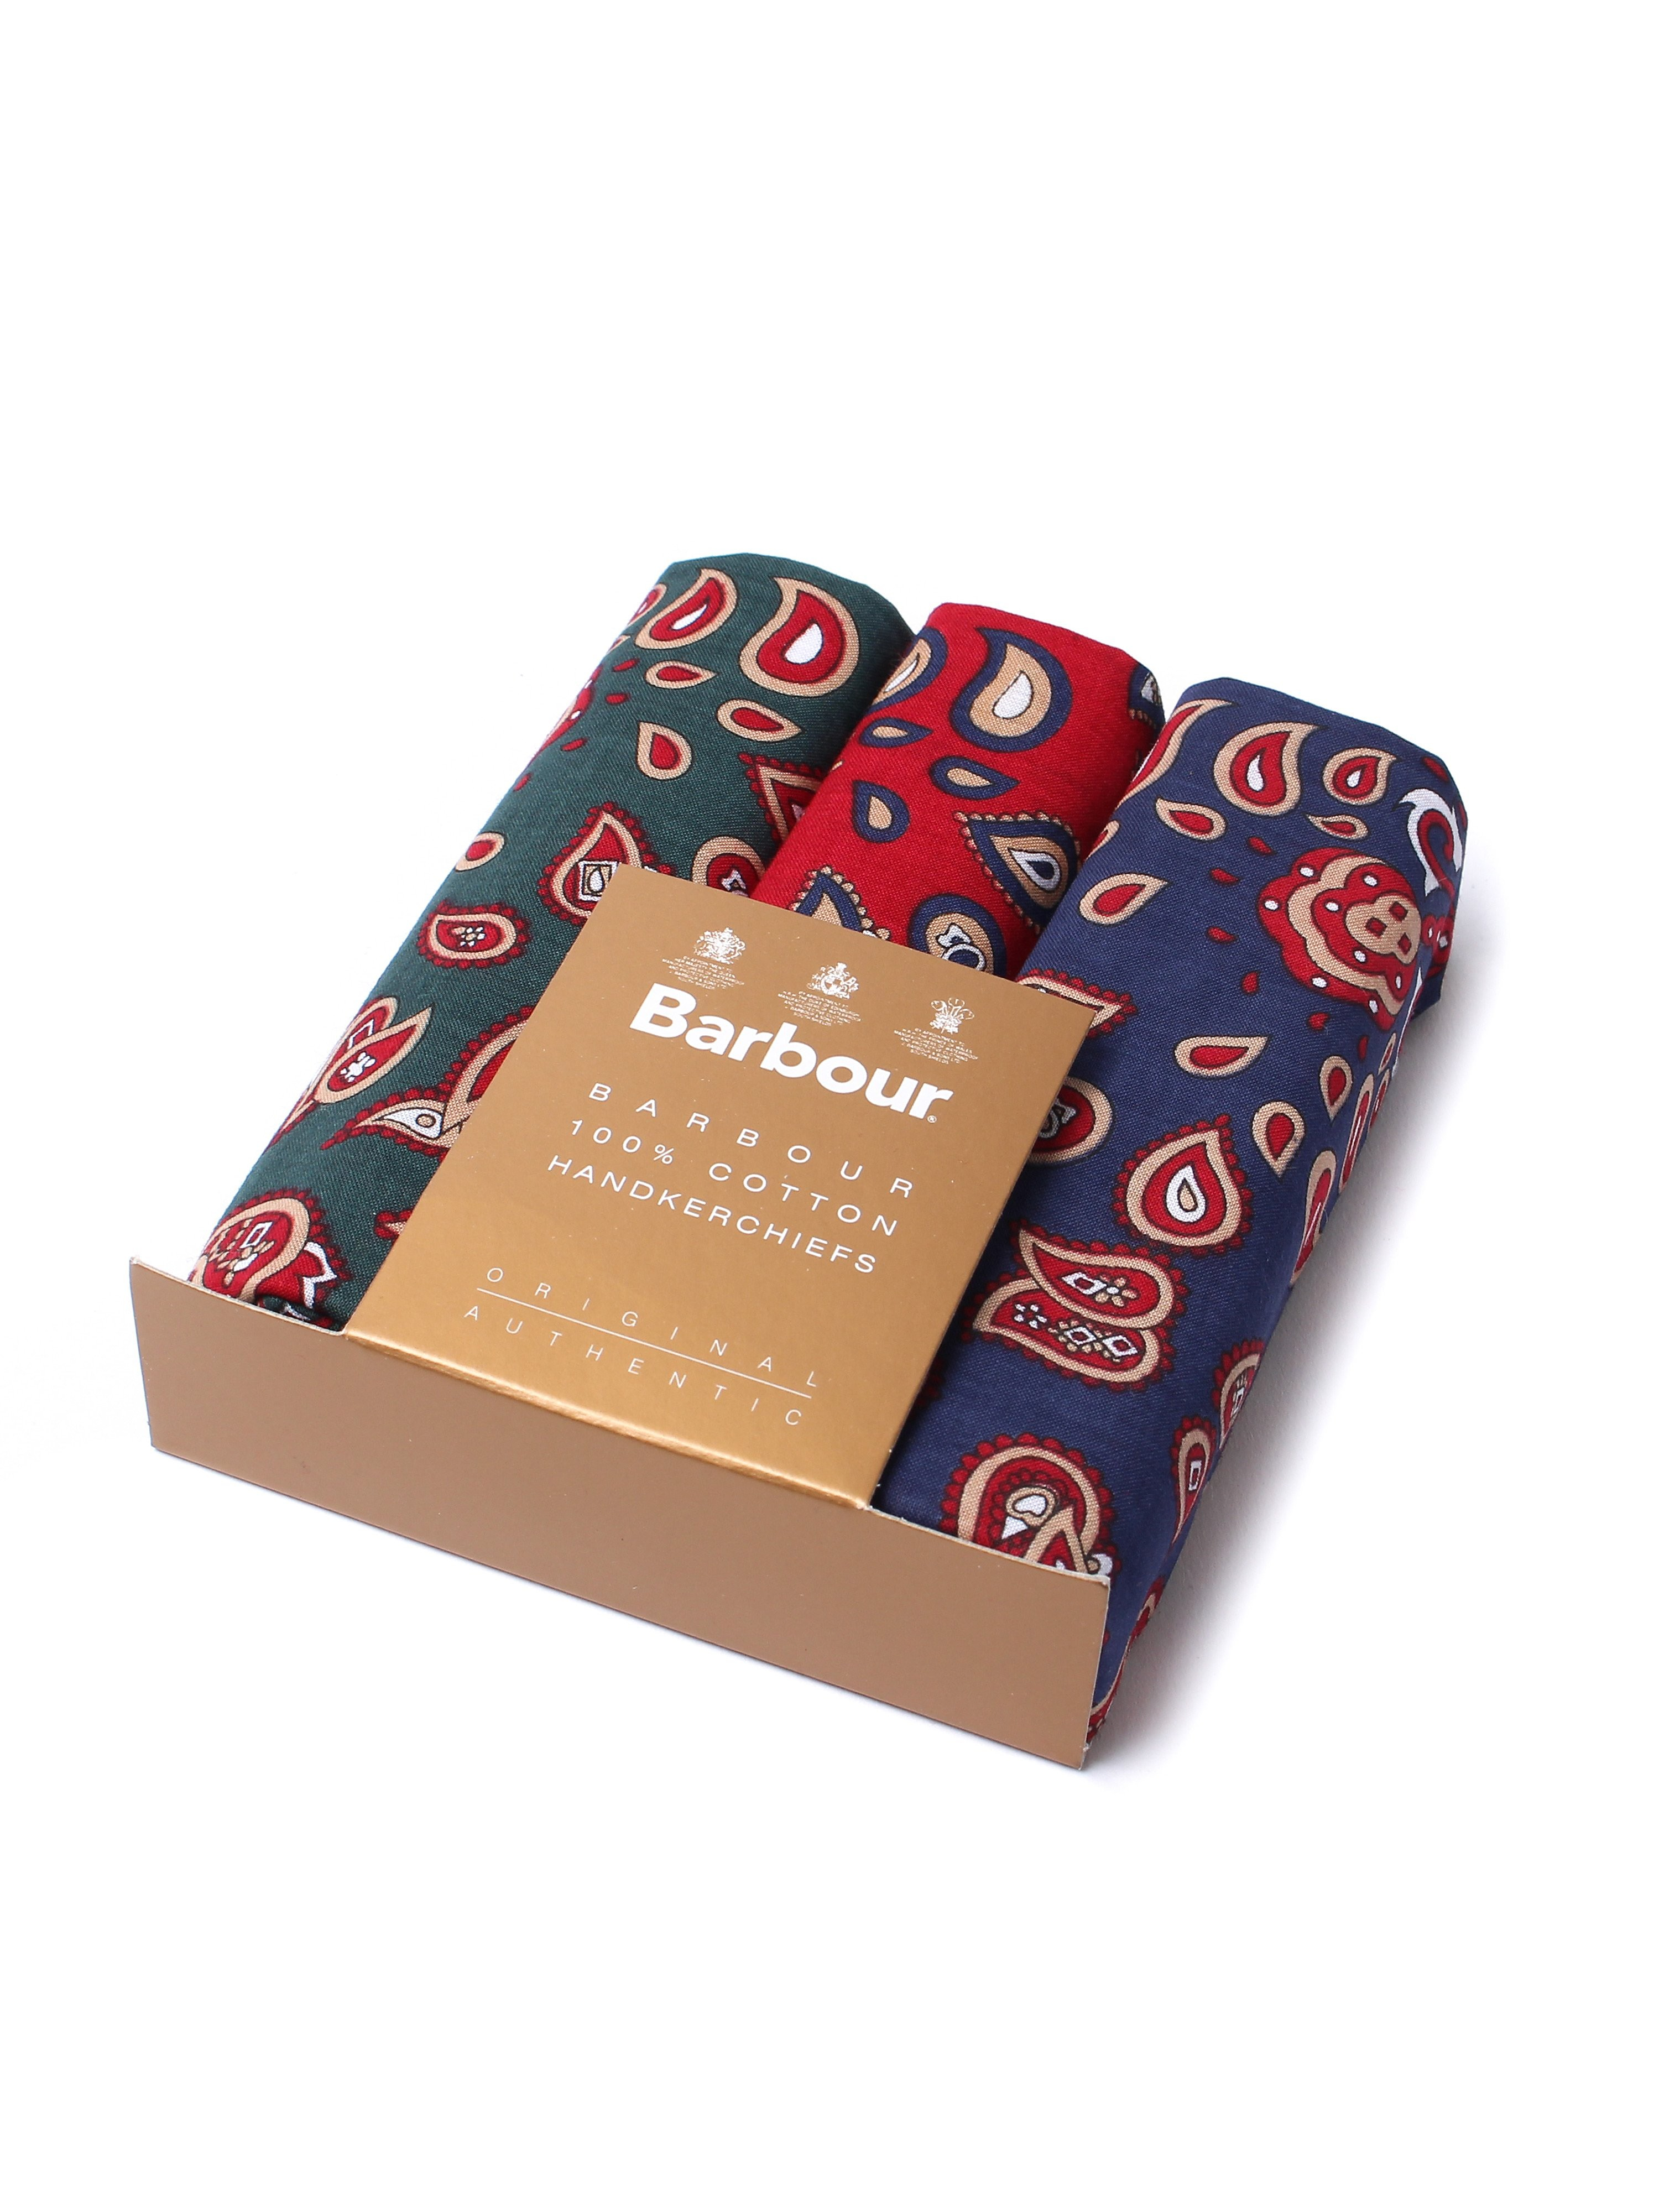 Barbour 3 Pack Paisley Cotton Handkerchiefs - Red, Blue & Green